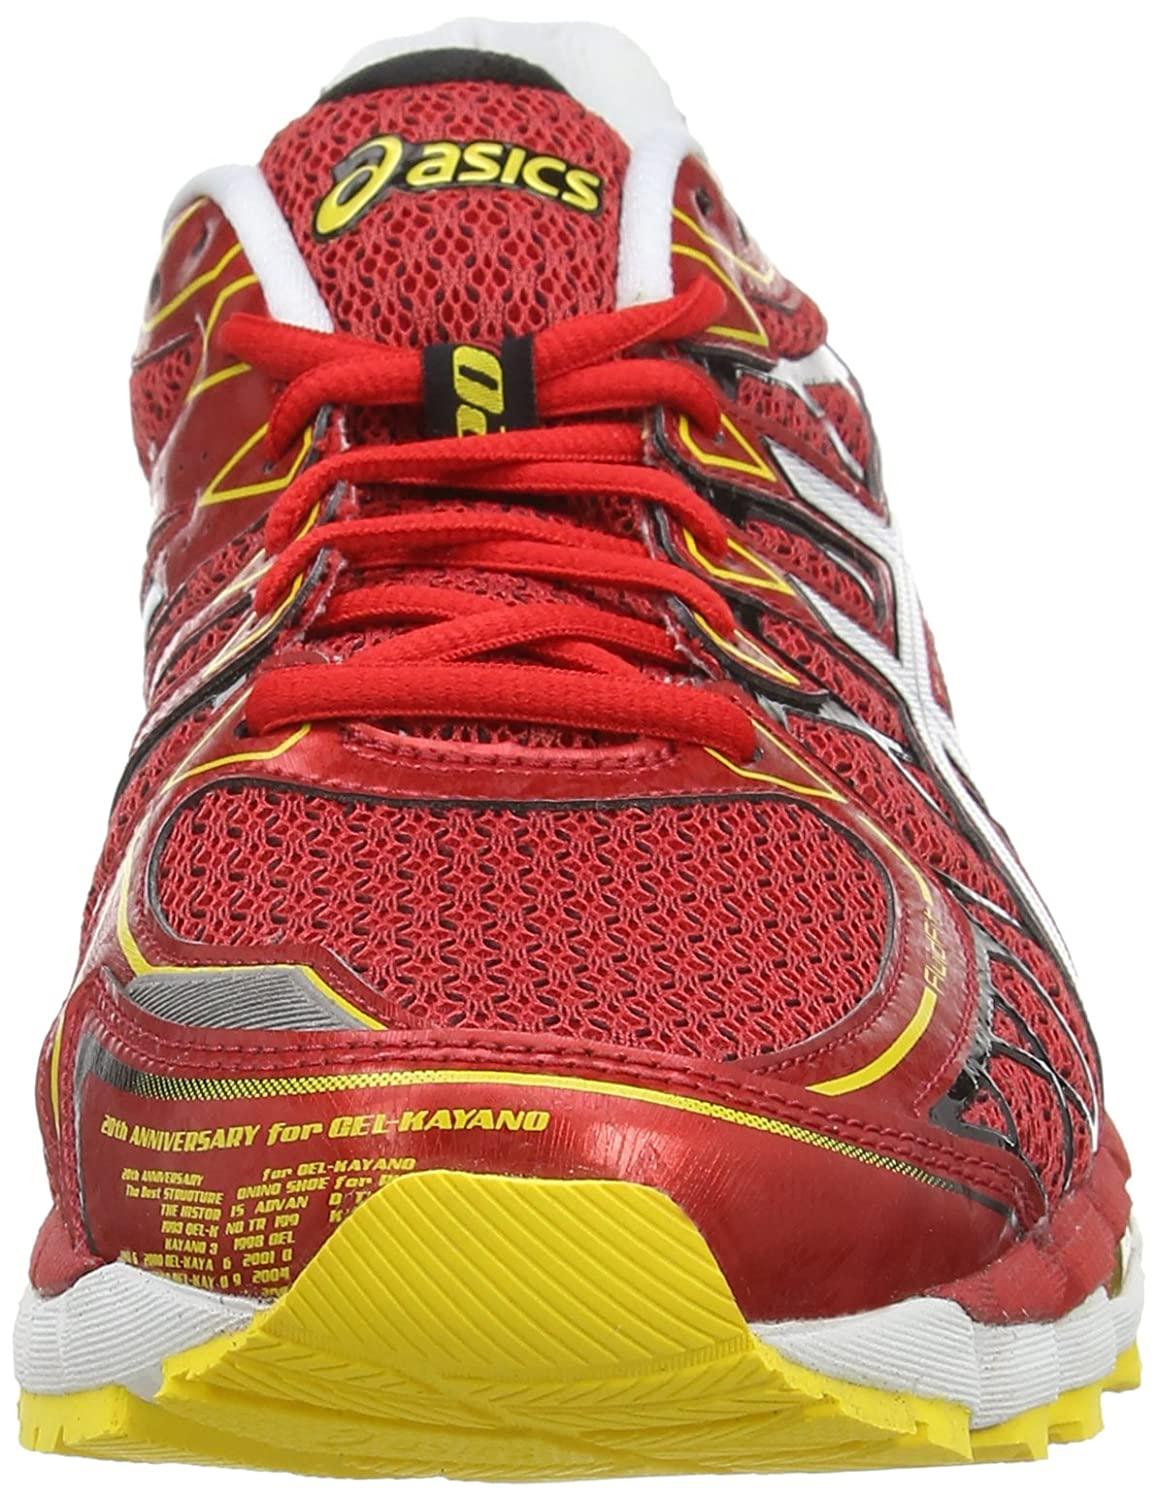 buy online 0a9ff f6045 ASICS GEL-KAYANO 20 Running Shoes - 13  Amazon.co.uk  Shoes   Bags